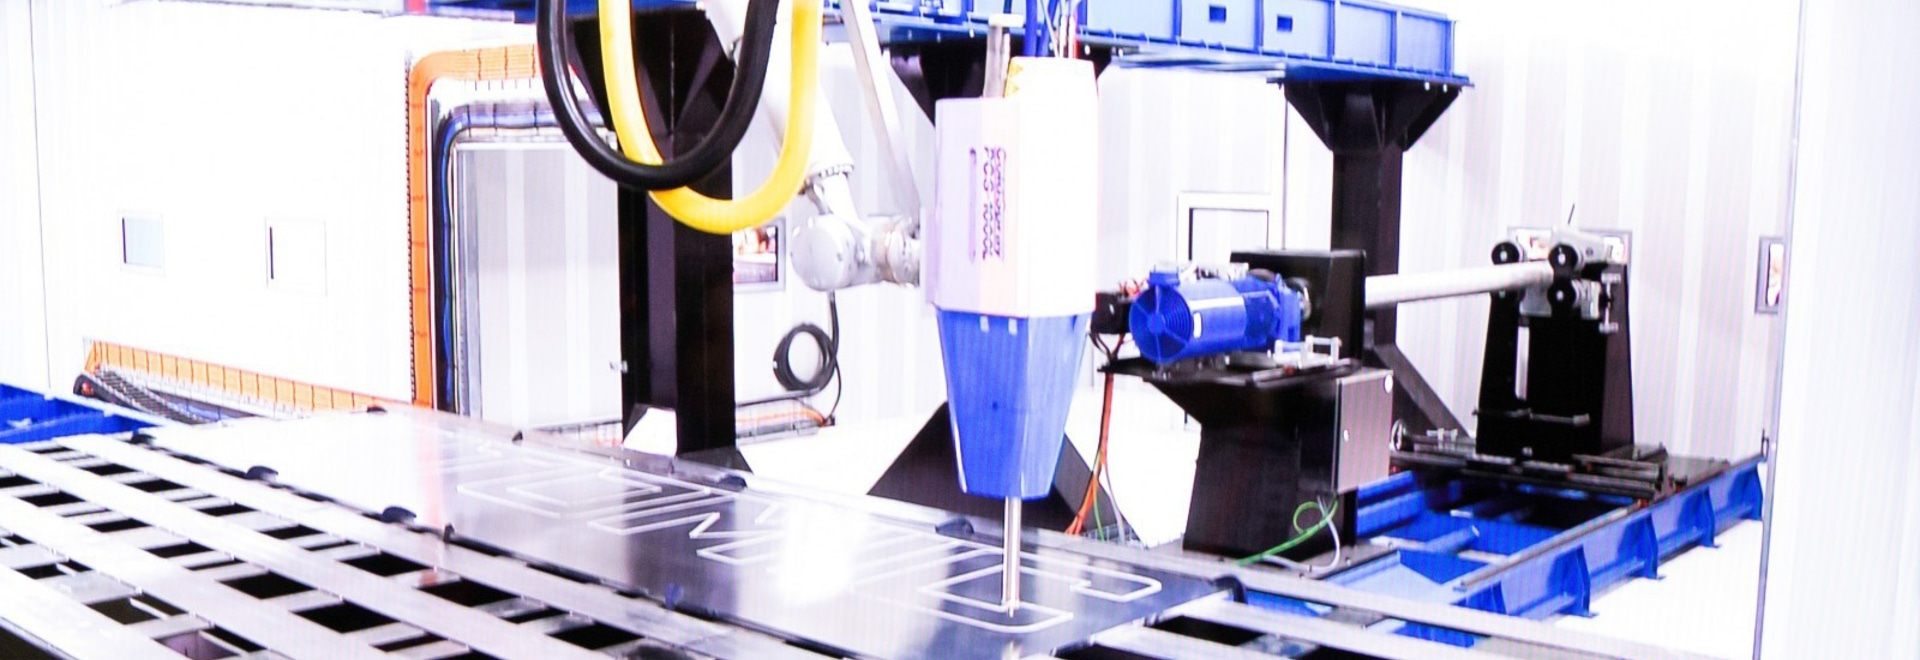 Titomic Launches 'World's Largest' Metal 3D Printer in Australia